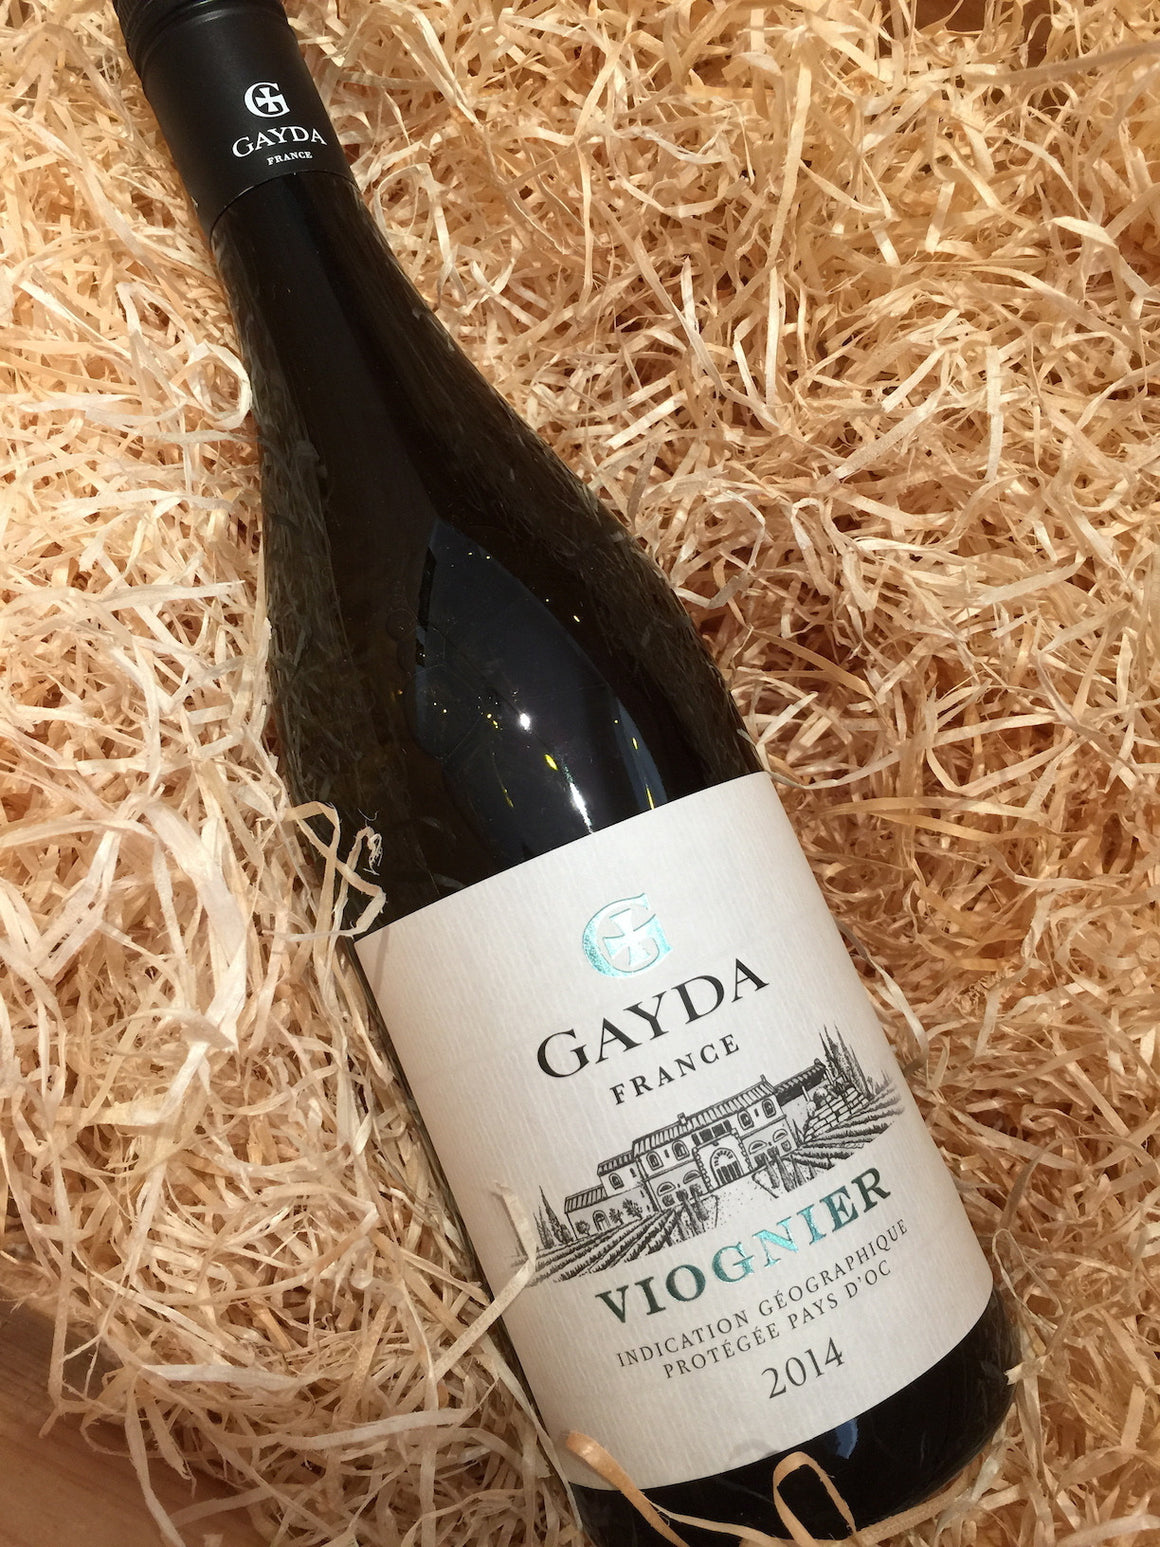 Domaine Gayda Viognier 2014 75cl